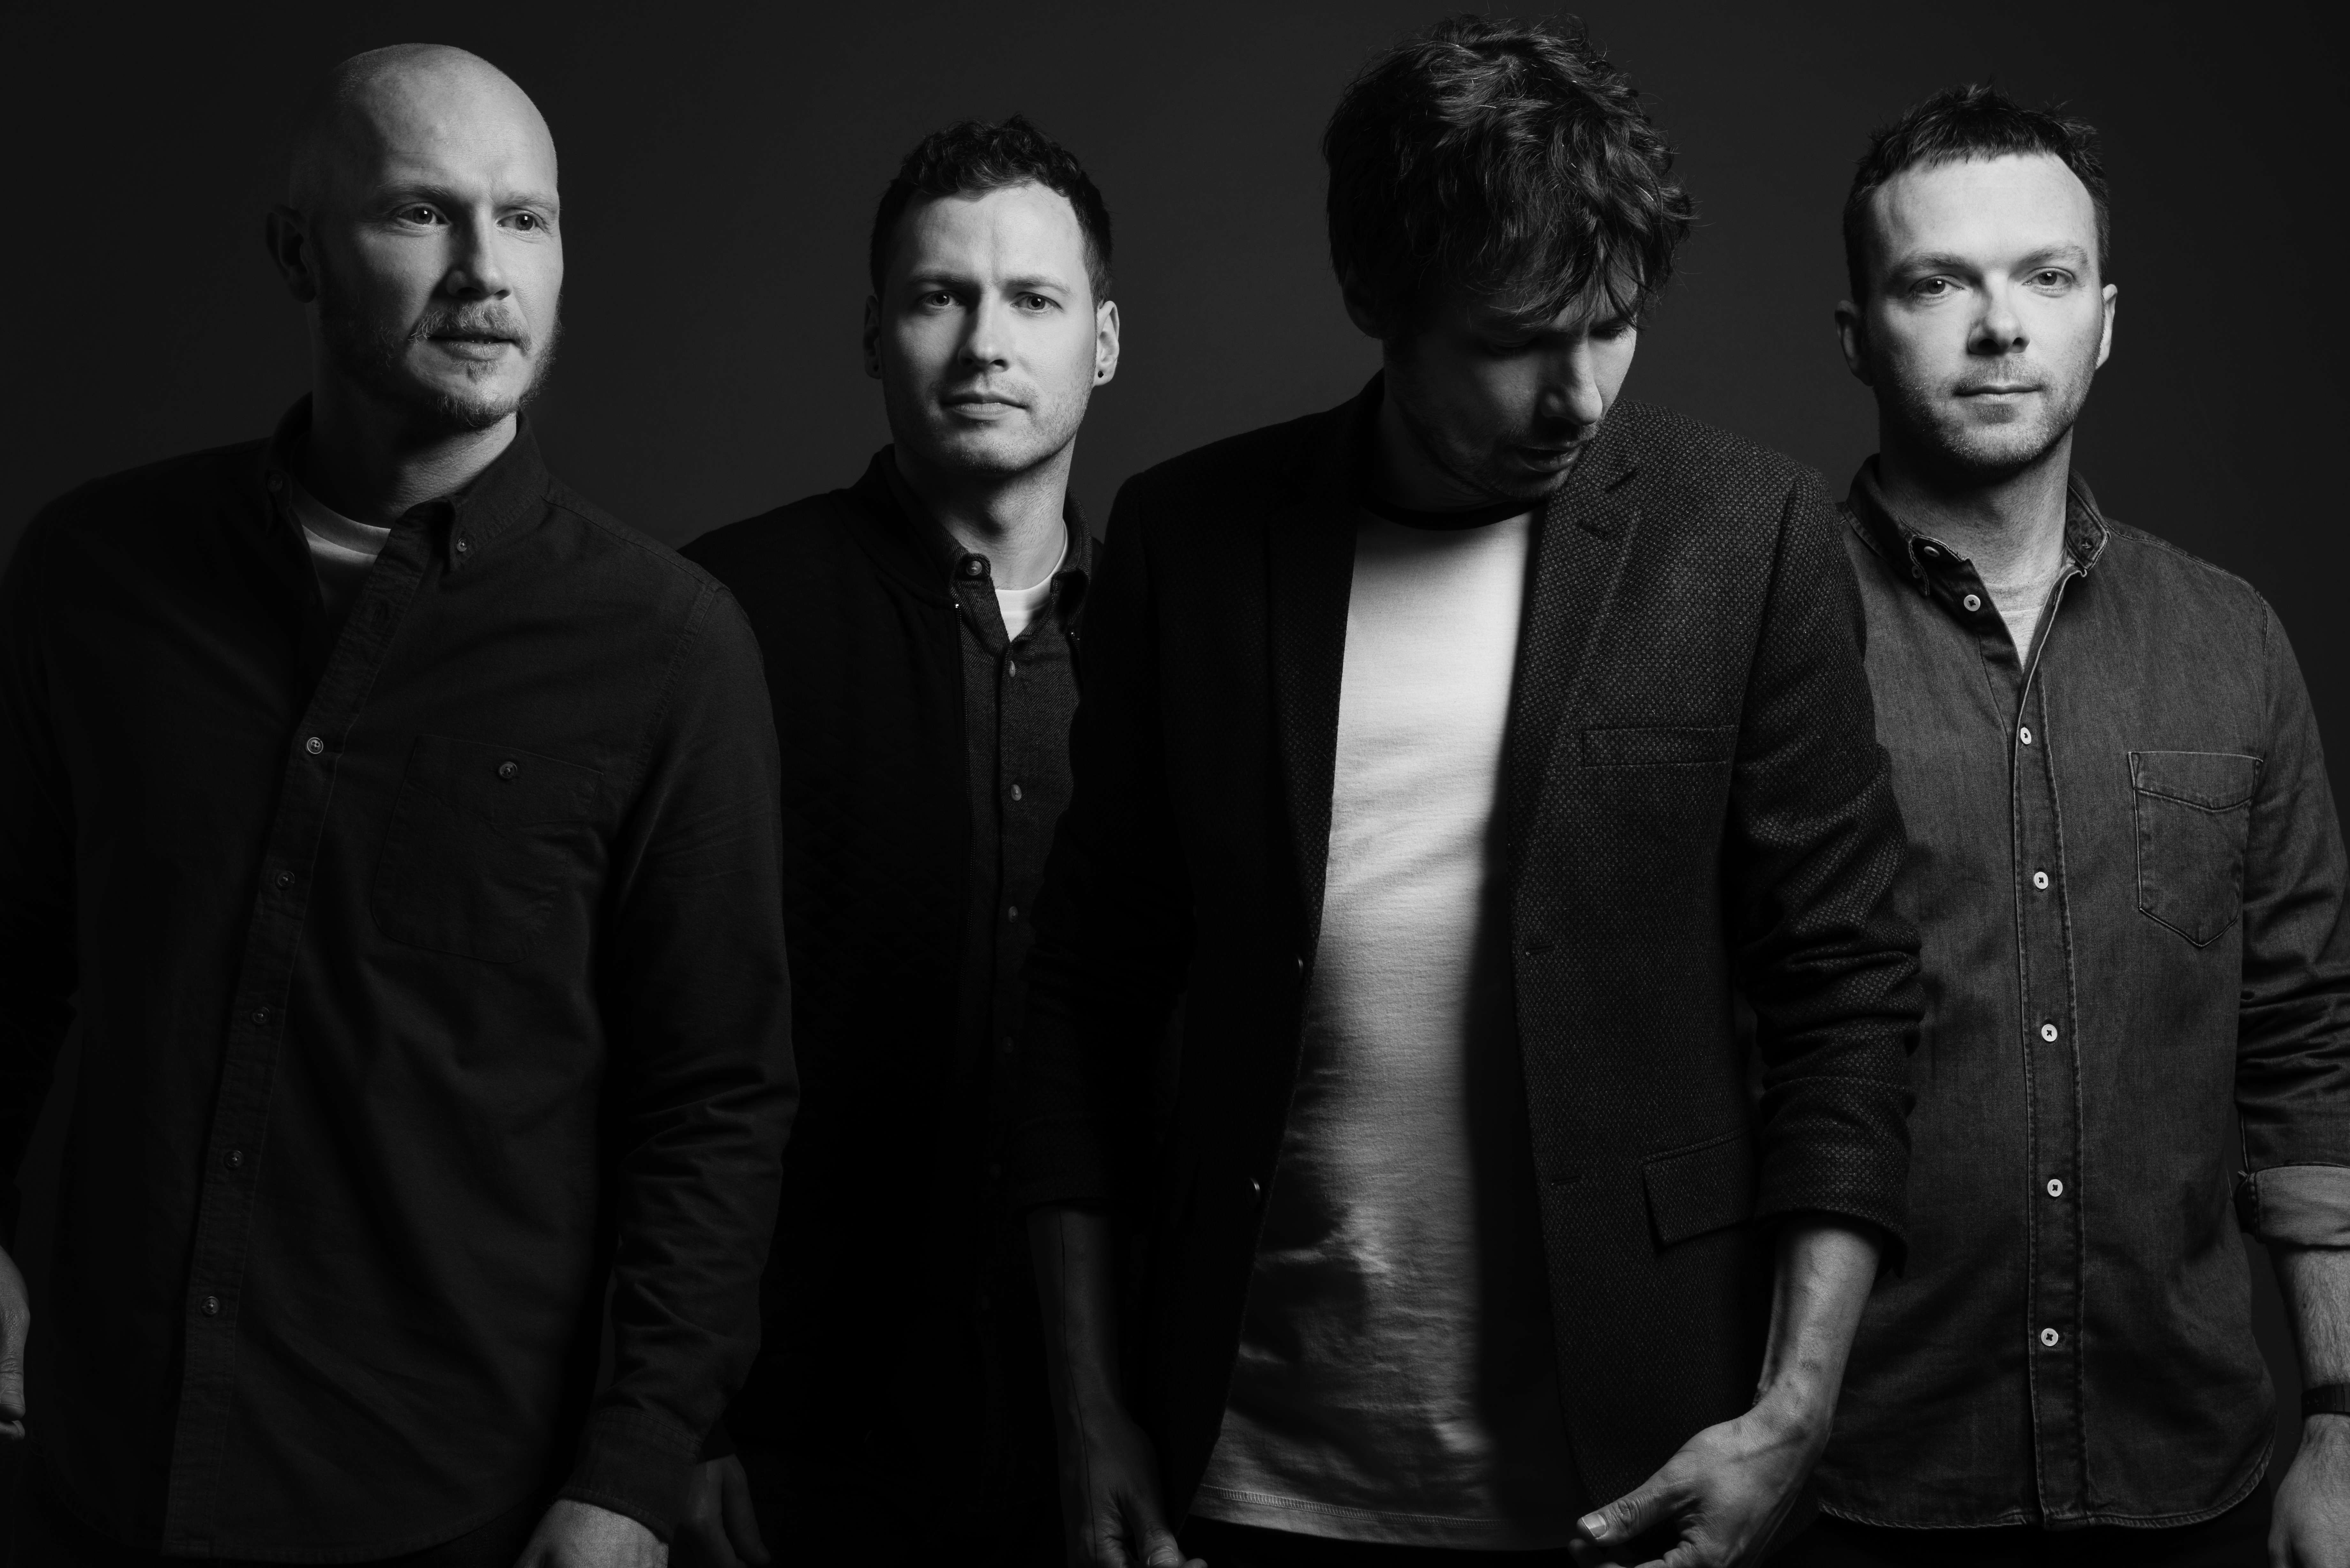 Interview with Bruce Soord of The Pineapple Thief